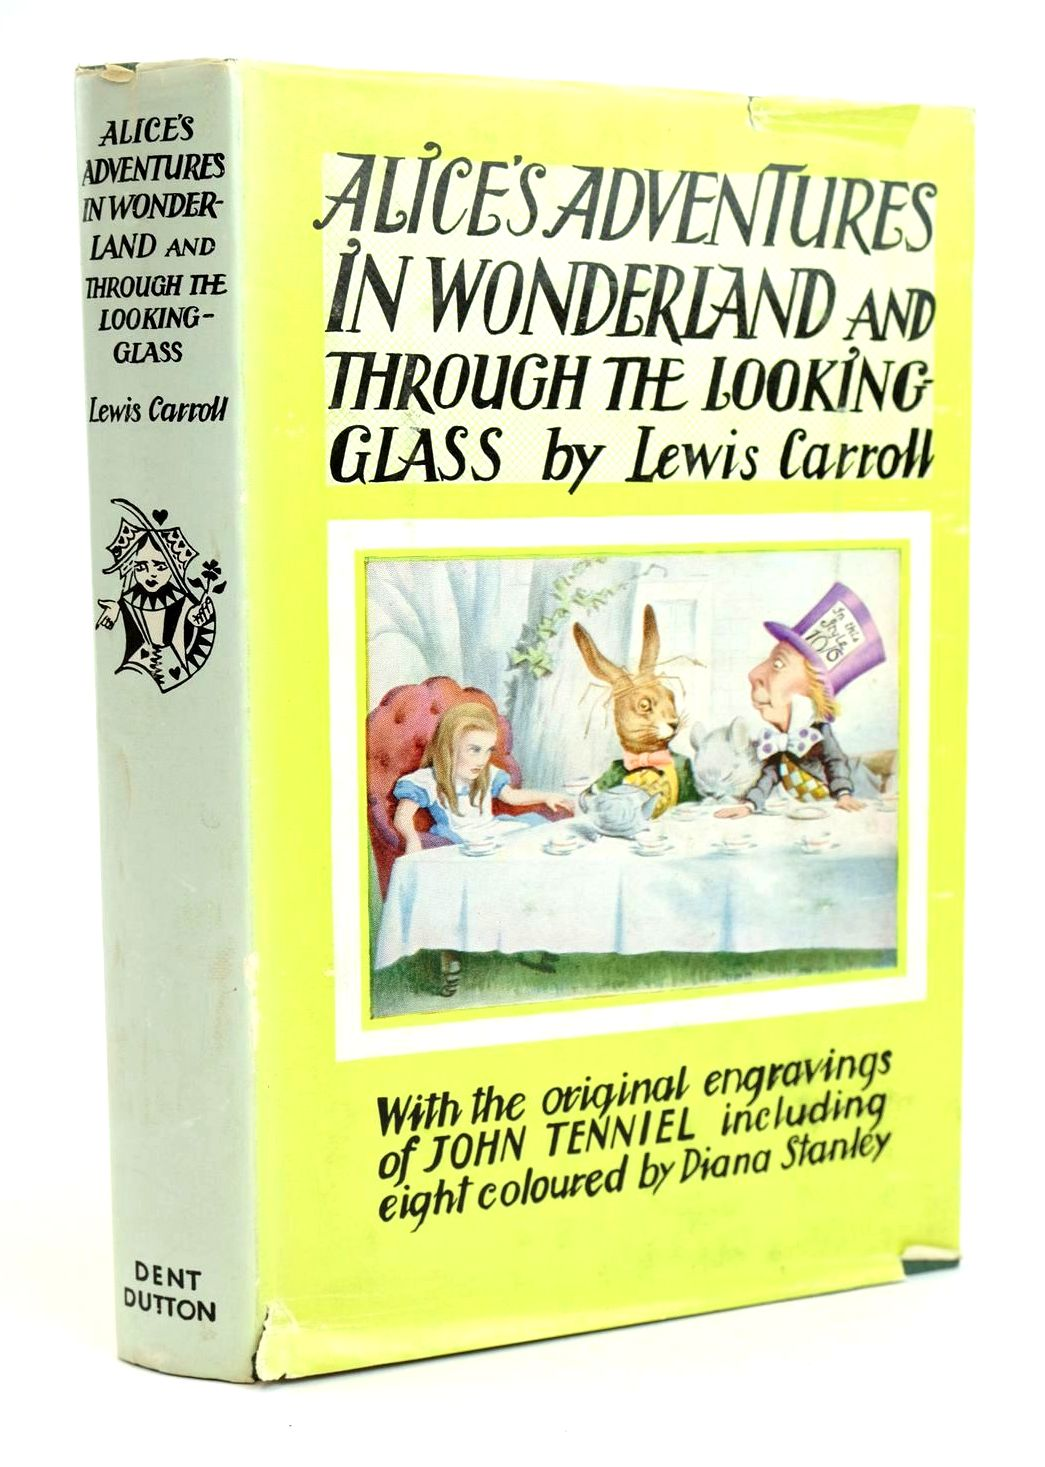 Photo of ALICE'S ADVENTURES IN WONDERLAND AND THROUGH THE LOOKING-GLASS written by Carroll, Lewis illustrated by Tenniel, John Stanley, Diana published by J.M. Dent & Sons Ltd. (STOCK CODE: 1319221)  for sale by Stella & Rose's Books